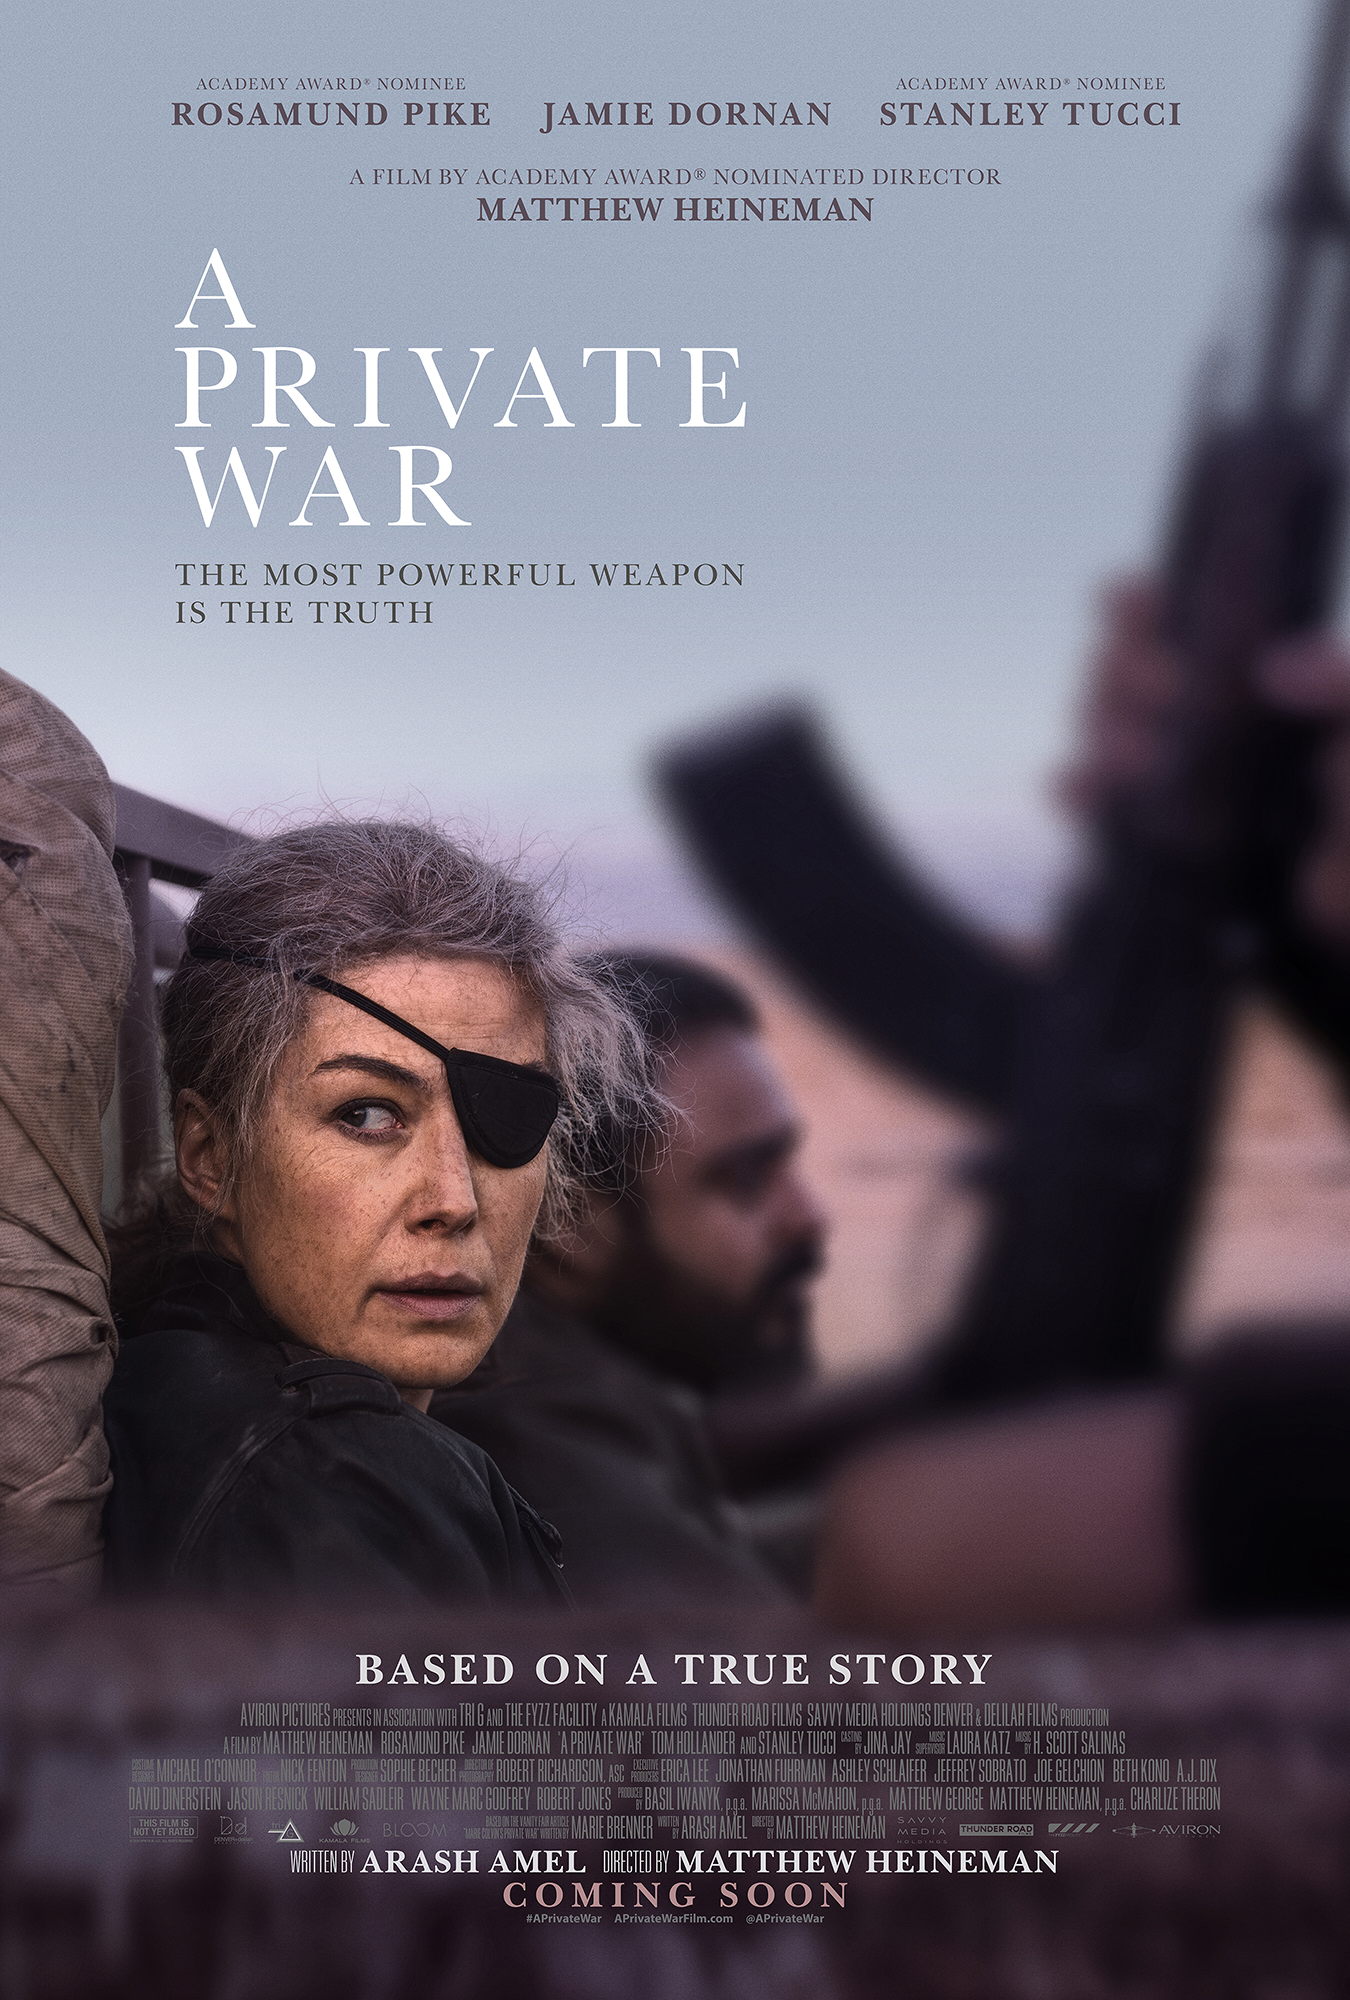 A Private War (2018) - Directed by: Matthew HeinemanStarring: Rosamund Pike, Jamie Dornan, Tom Hollander, Stanley TucciRated: R for Disturbing Violent Images, Language Throughout, and Brief Sexuality/NudityRunning Time: 1 h 50 mTMM Score: 4 stars out of 5STRENGTHS: Acting, Writing, Directing, CinematographyWEAKNESSES: Some Dream Sequences